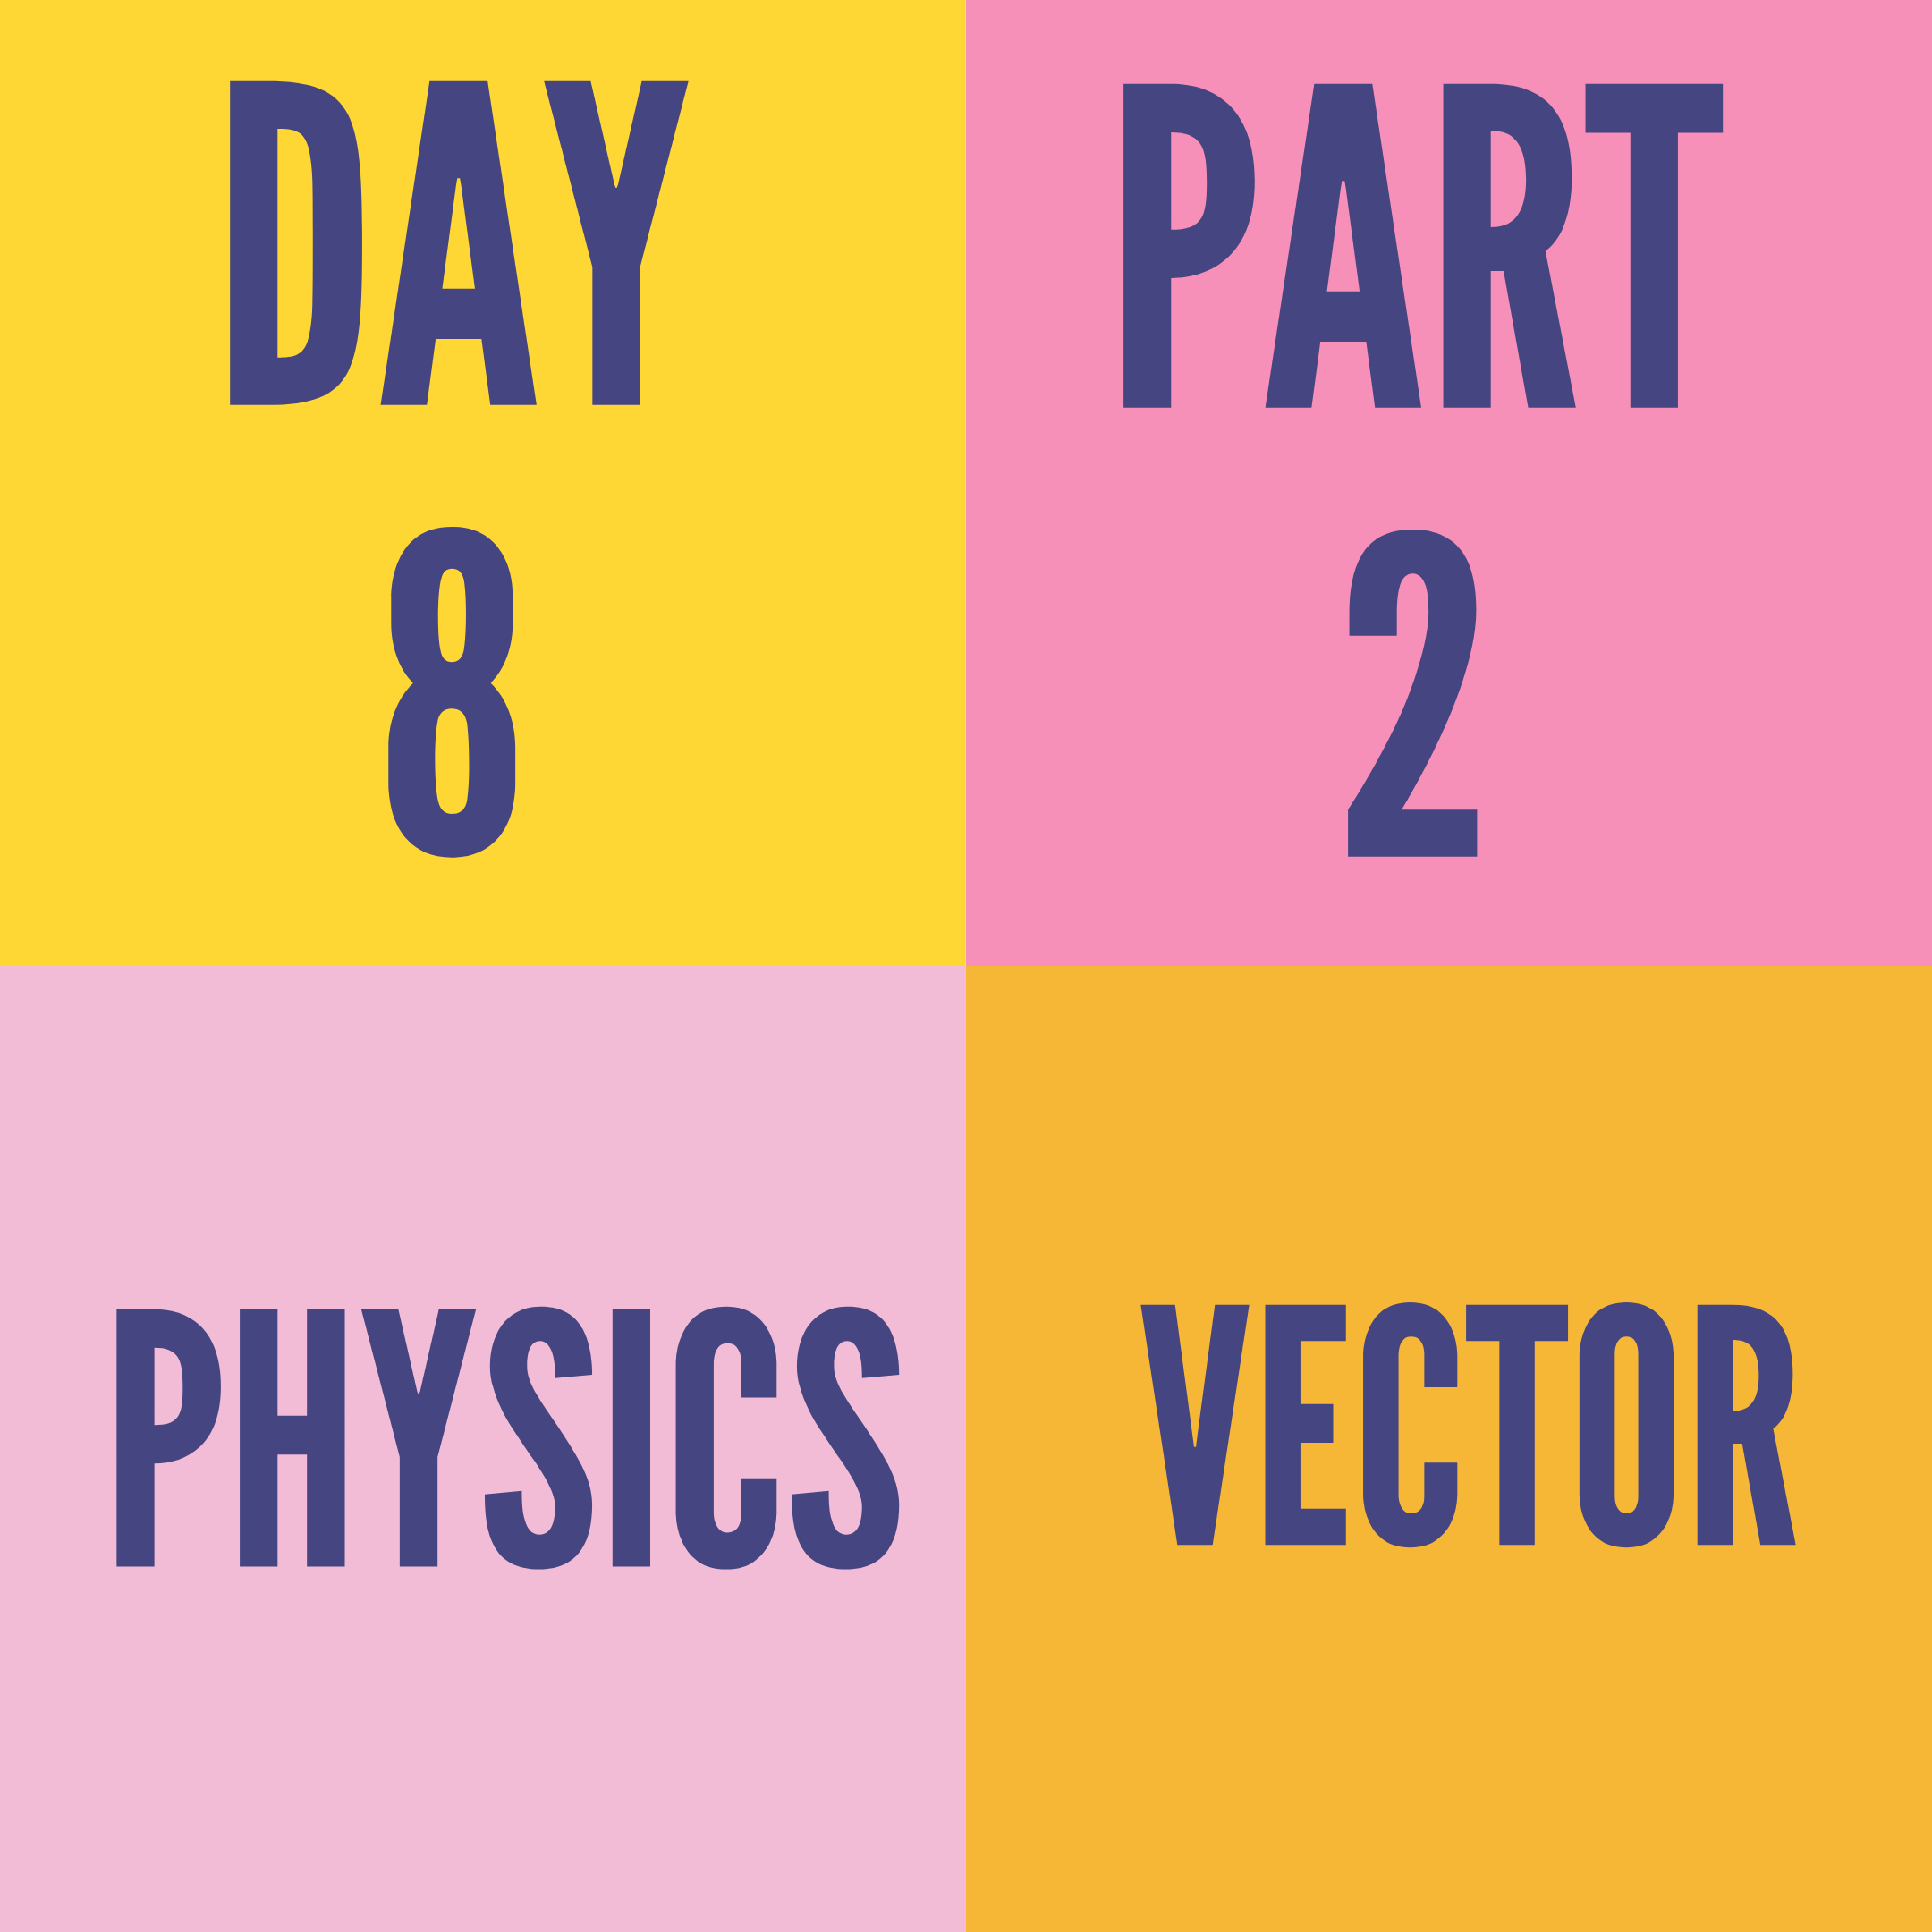 DAY-8 PART-2 VECTOR